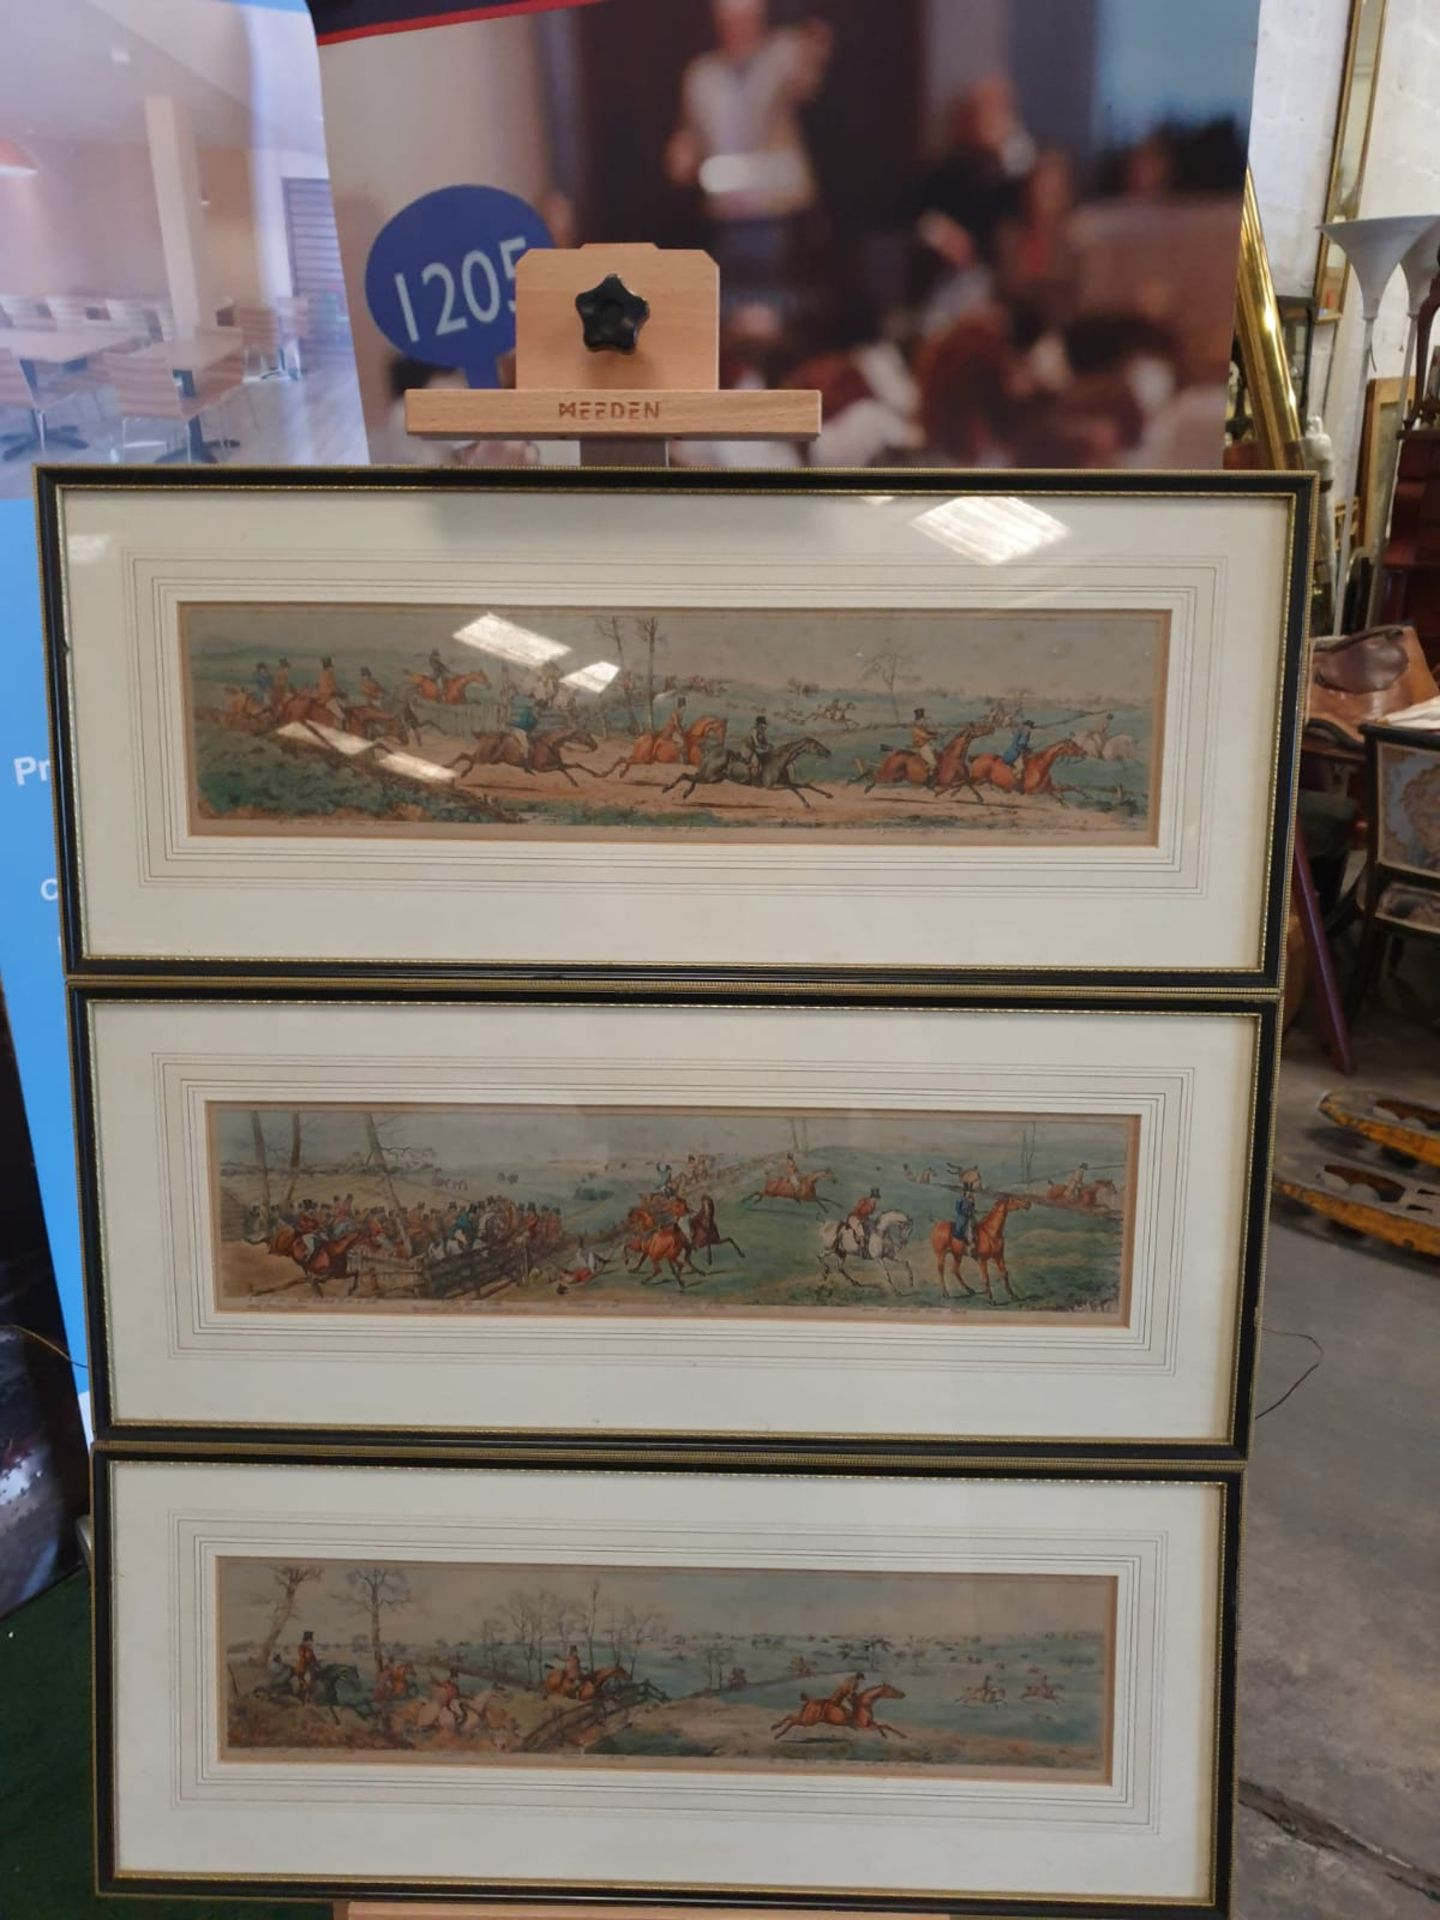 A set of 3 framed coloured panorma Hunters prints titled Lets take the road, Excersive polite, A